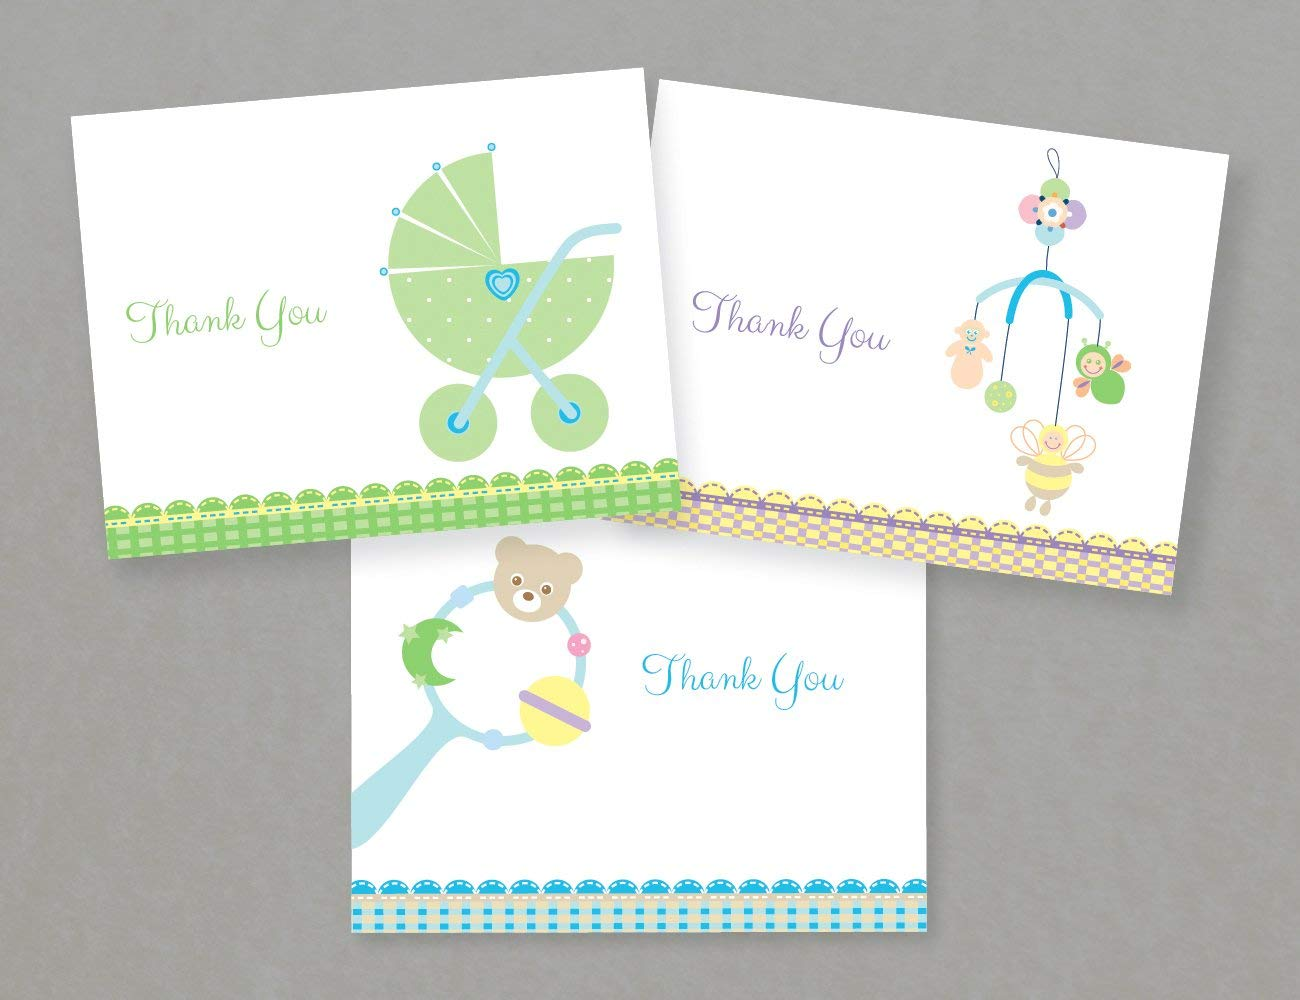 Full Size of Baby Shower:72+ Rousing Baby Shower Thank You Cards Picture Ideas Baby Shower Thank You Cards As Well As Bebe Baby Shower With Baby Shower Zebra Plus Baby Shower Party Ideas Together With Baby Shower Venues London